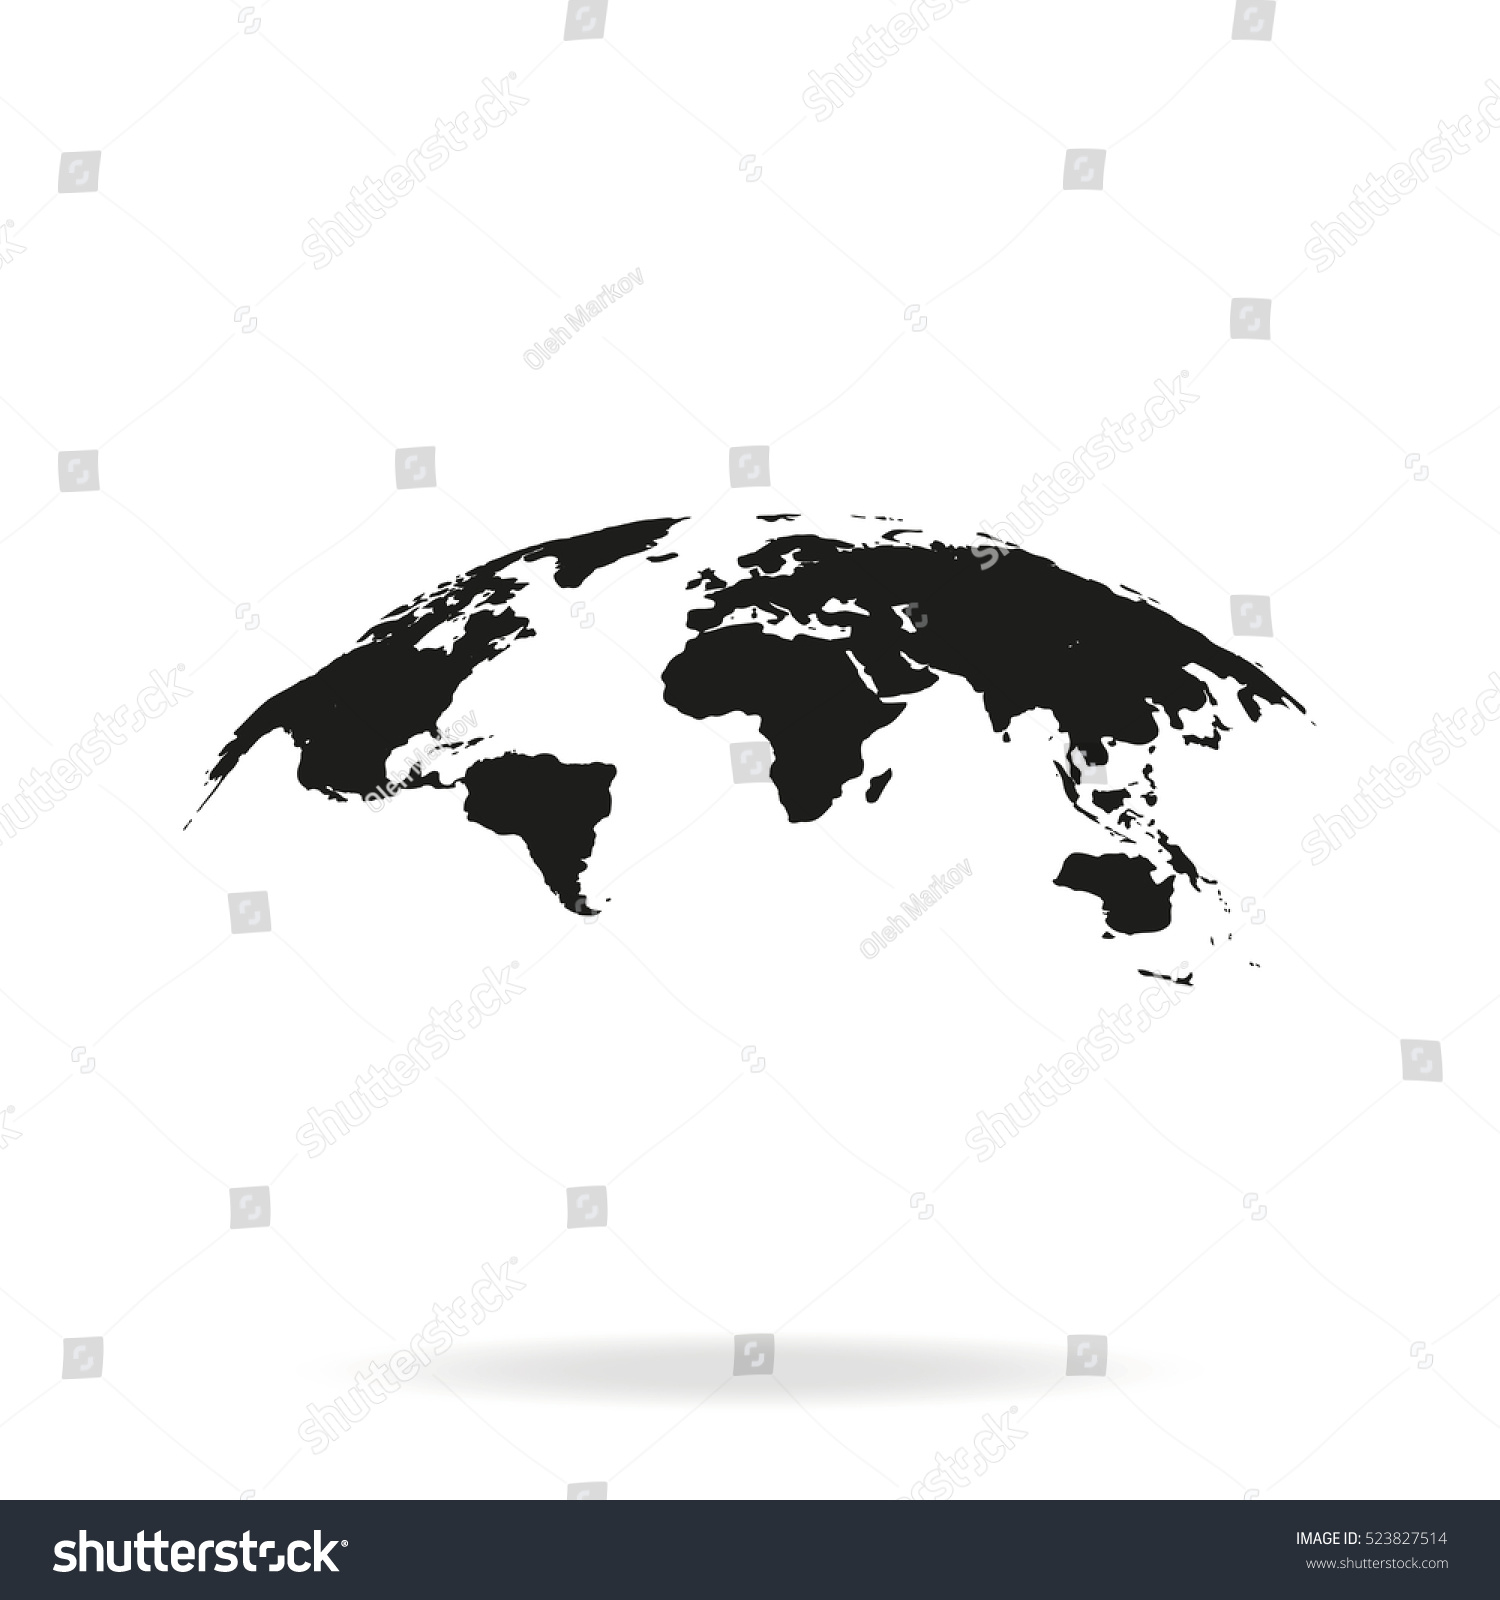 Global world map vector icon isolated stock vector royalty free global world map vector icon isolated on white background earth planet illustration flat globe gumiabroncs Image collections